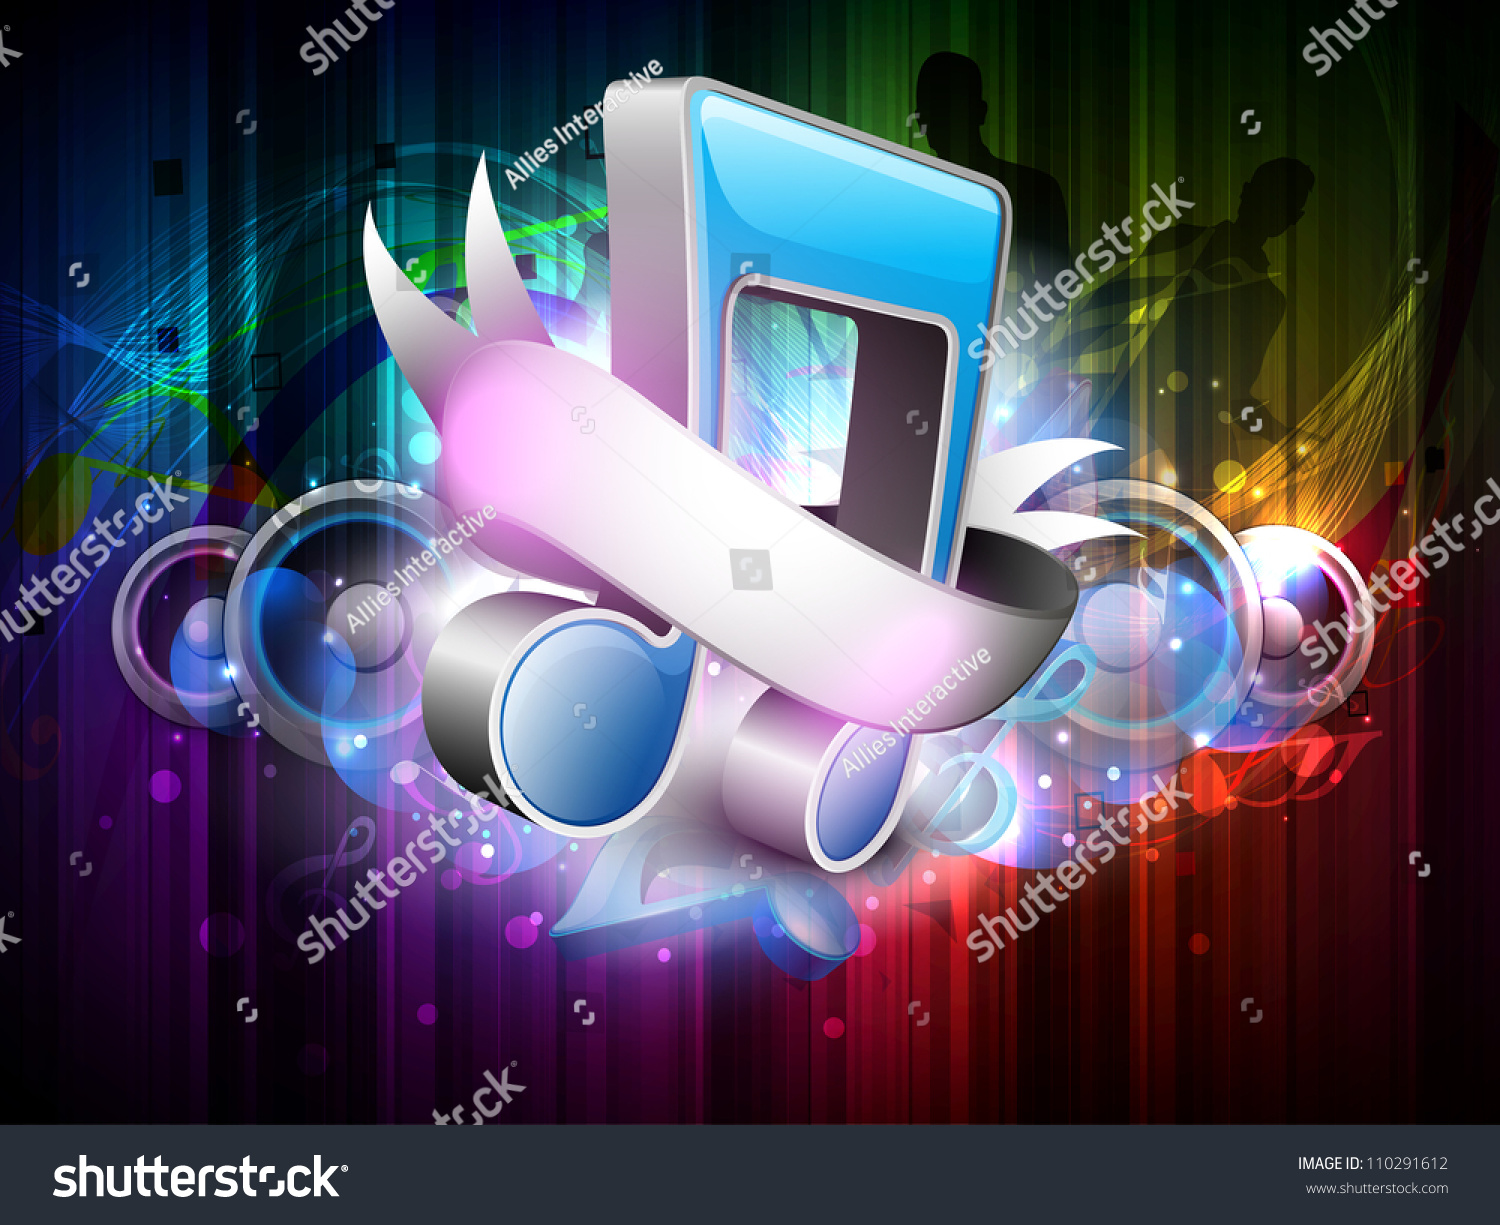 3d Colorful Music Notes Wallpaper: 3d Music Notes With Ribbon On Colorful Grungy Background